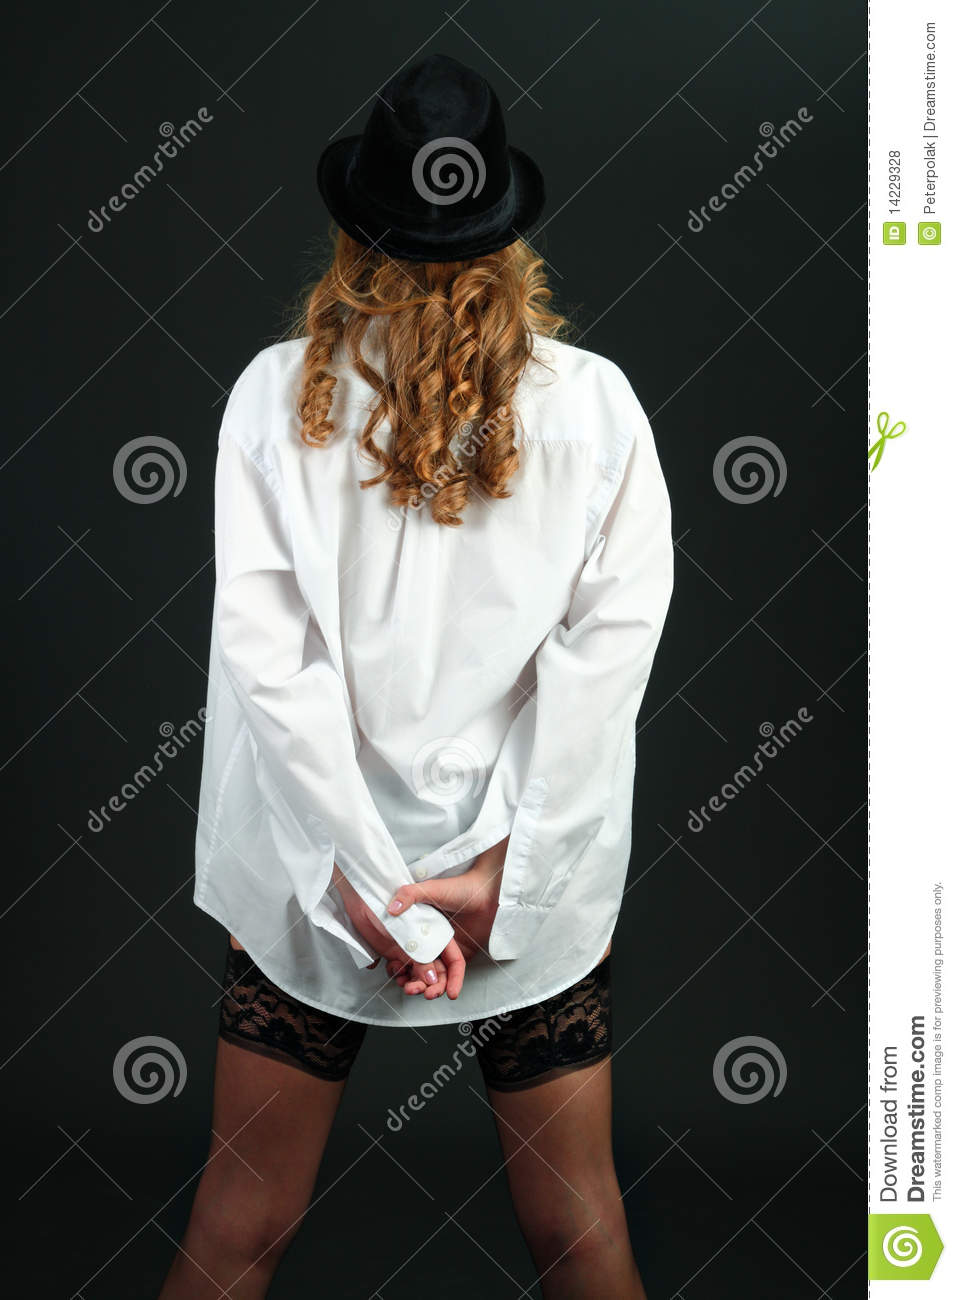 Girl Wearing White Shirt And Black Stockings Stock Photo ...